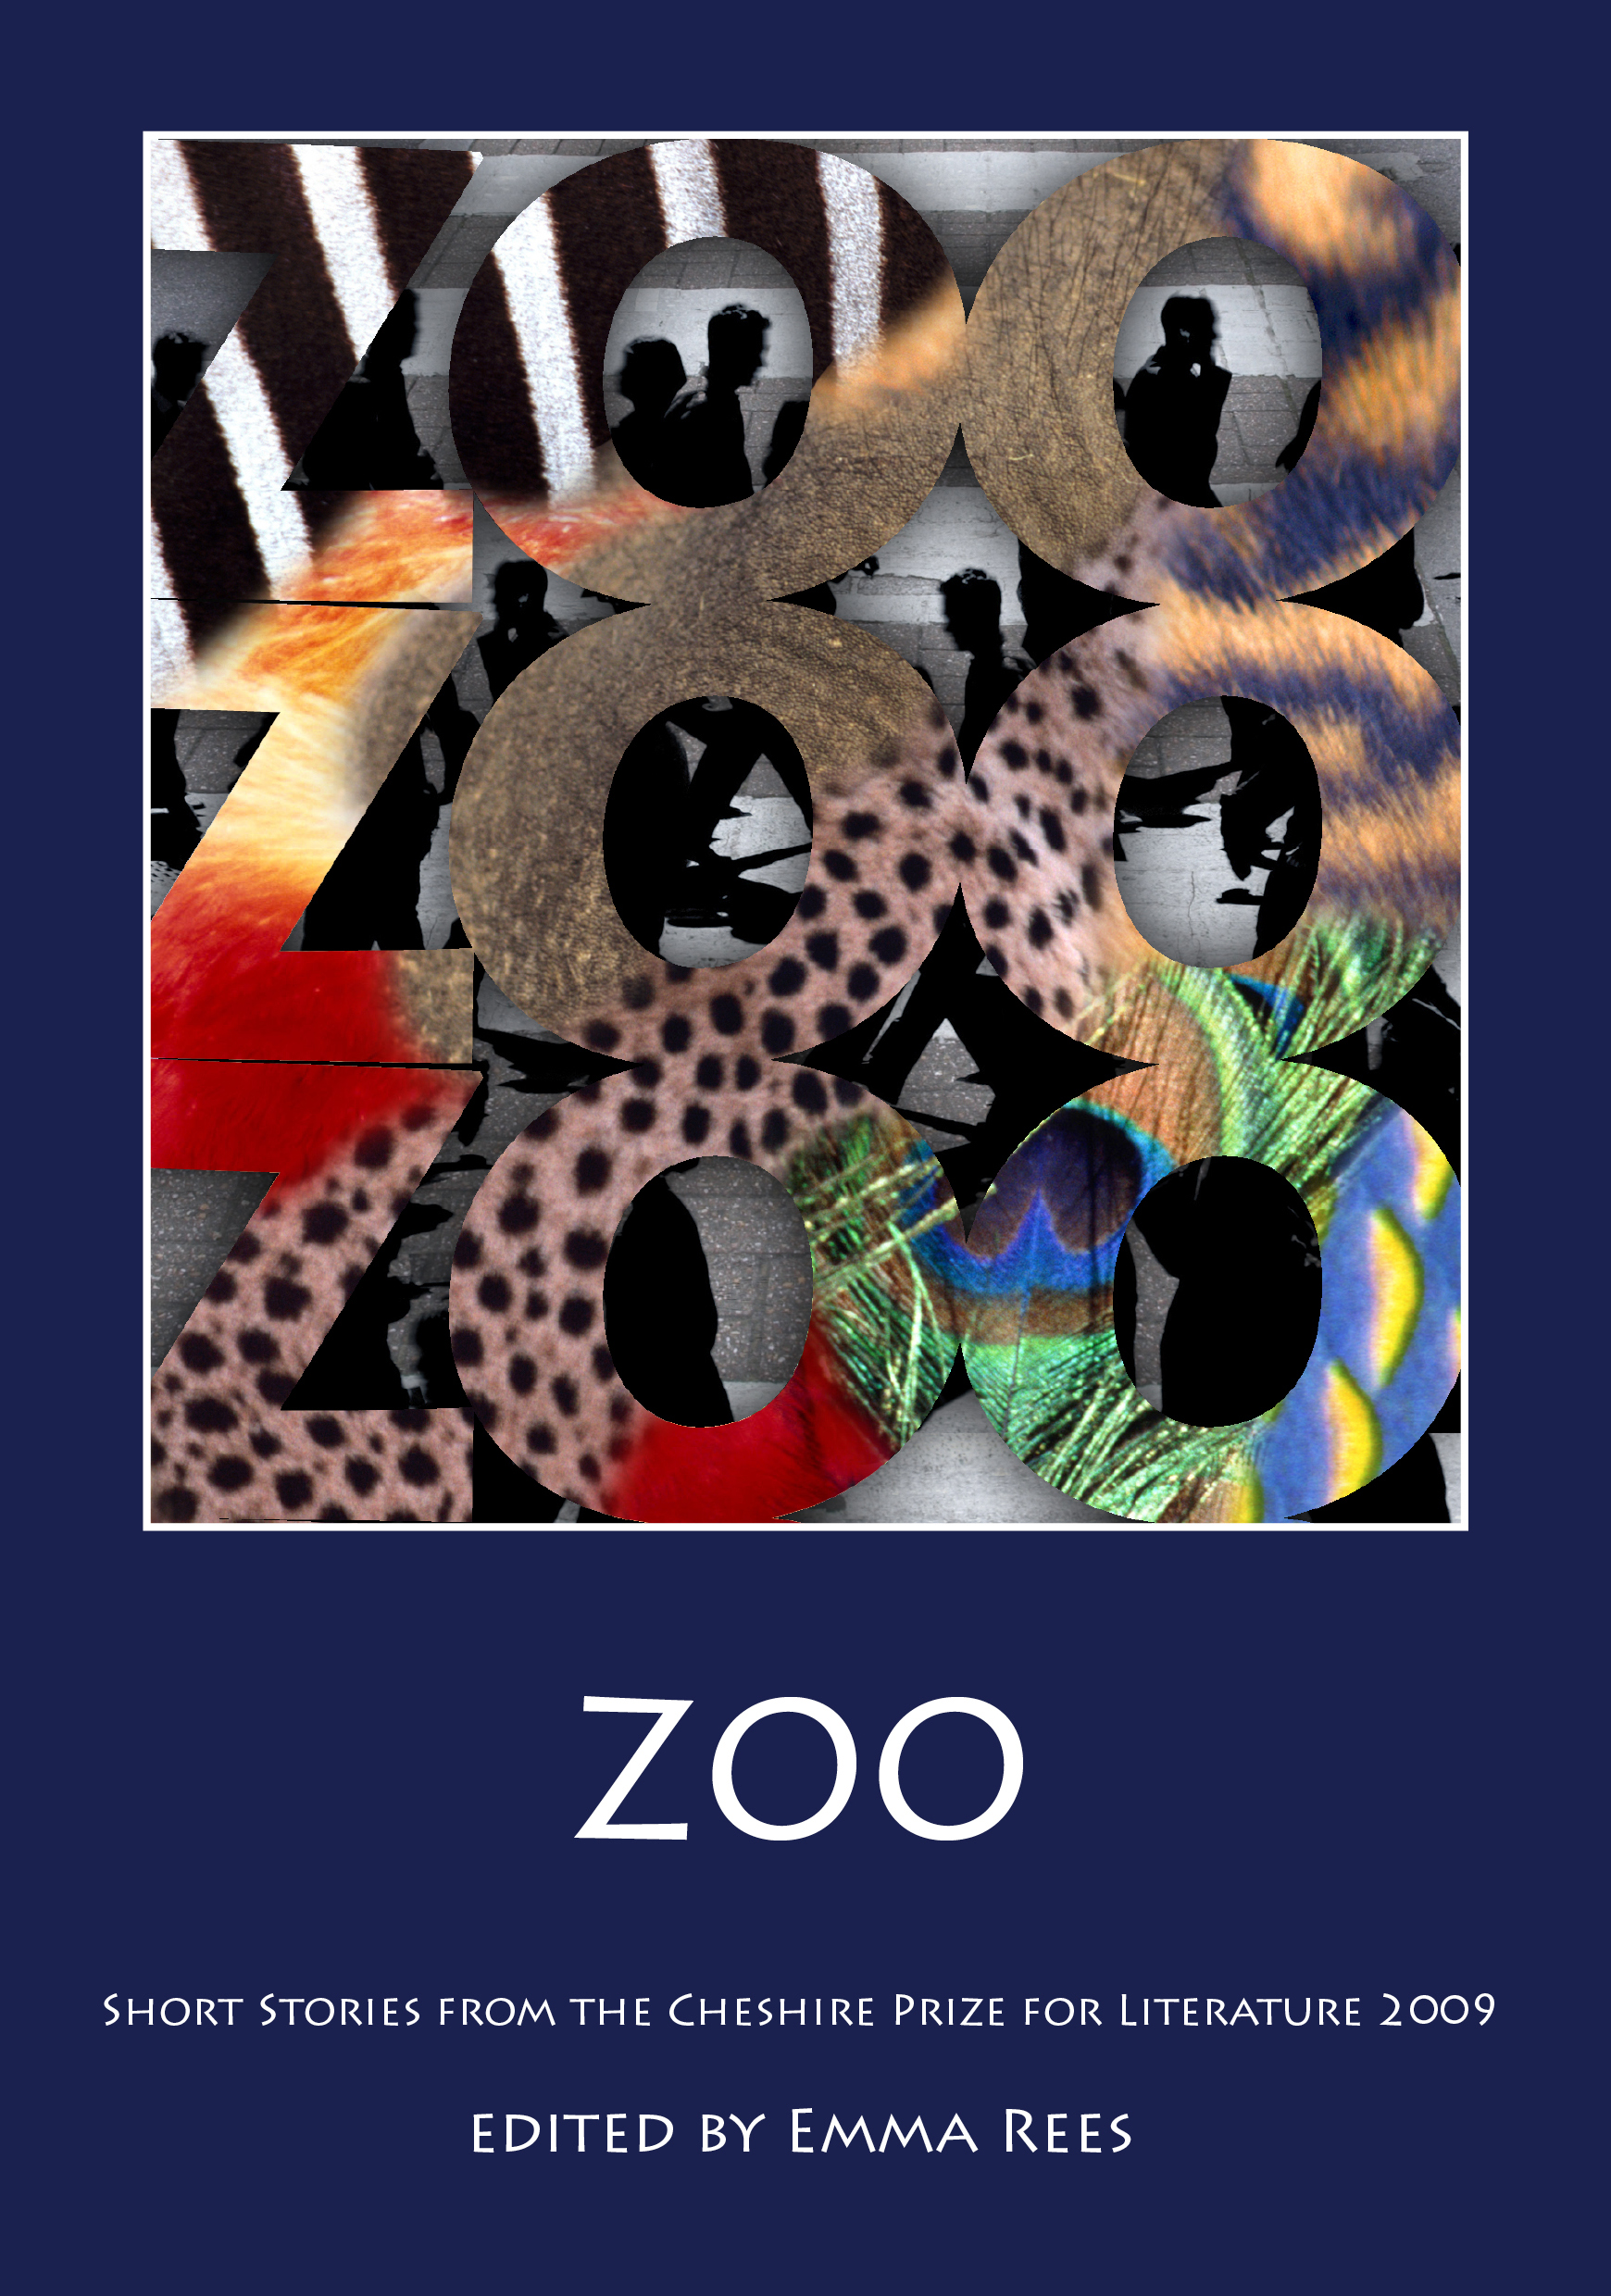 Zoo: Short Stories from the Cheshire Prize for Literature 2009